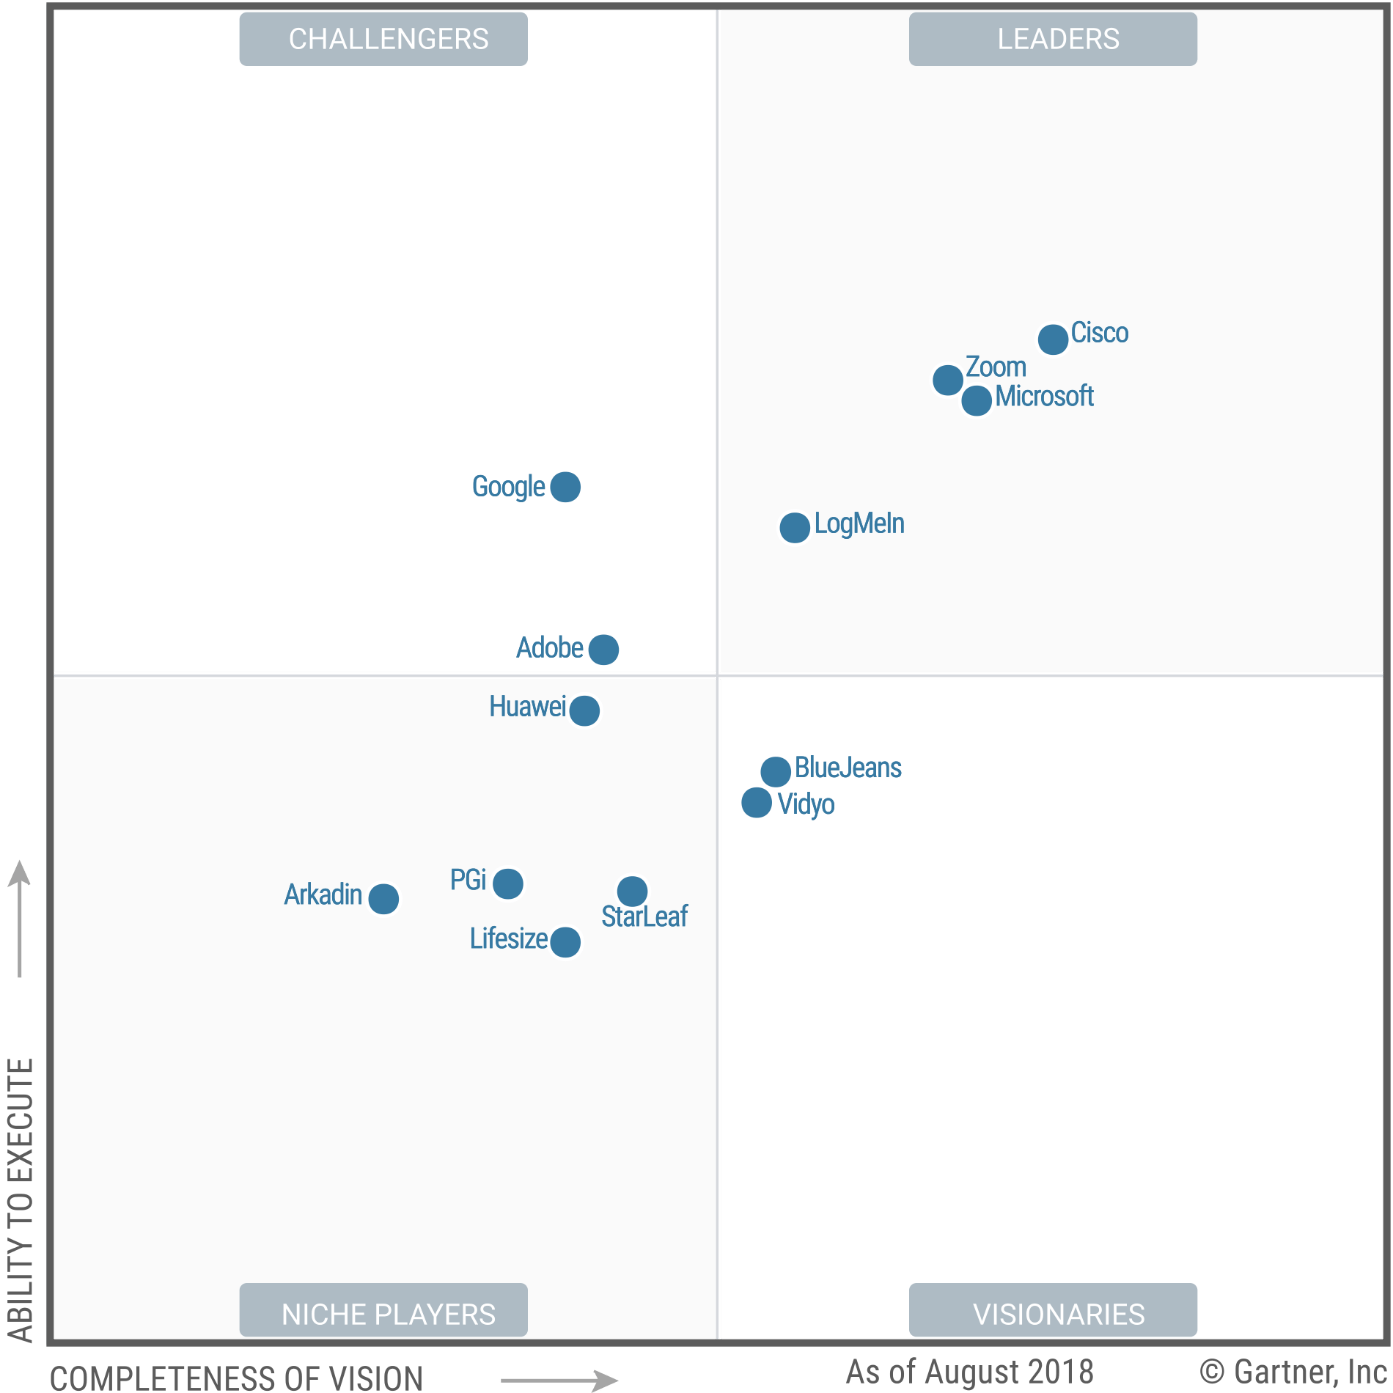 A Bite Sized Look at the 2018 Gartner Magic Quadrant for